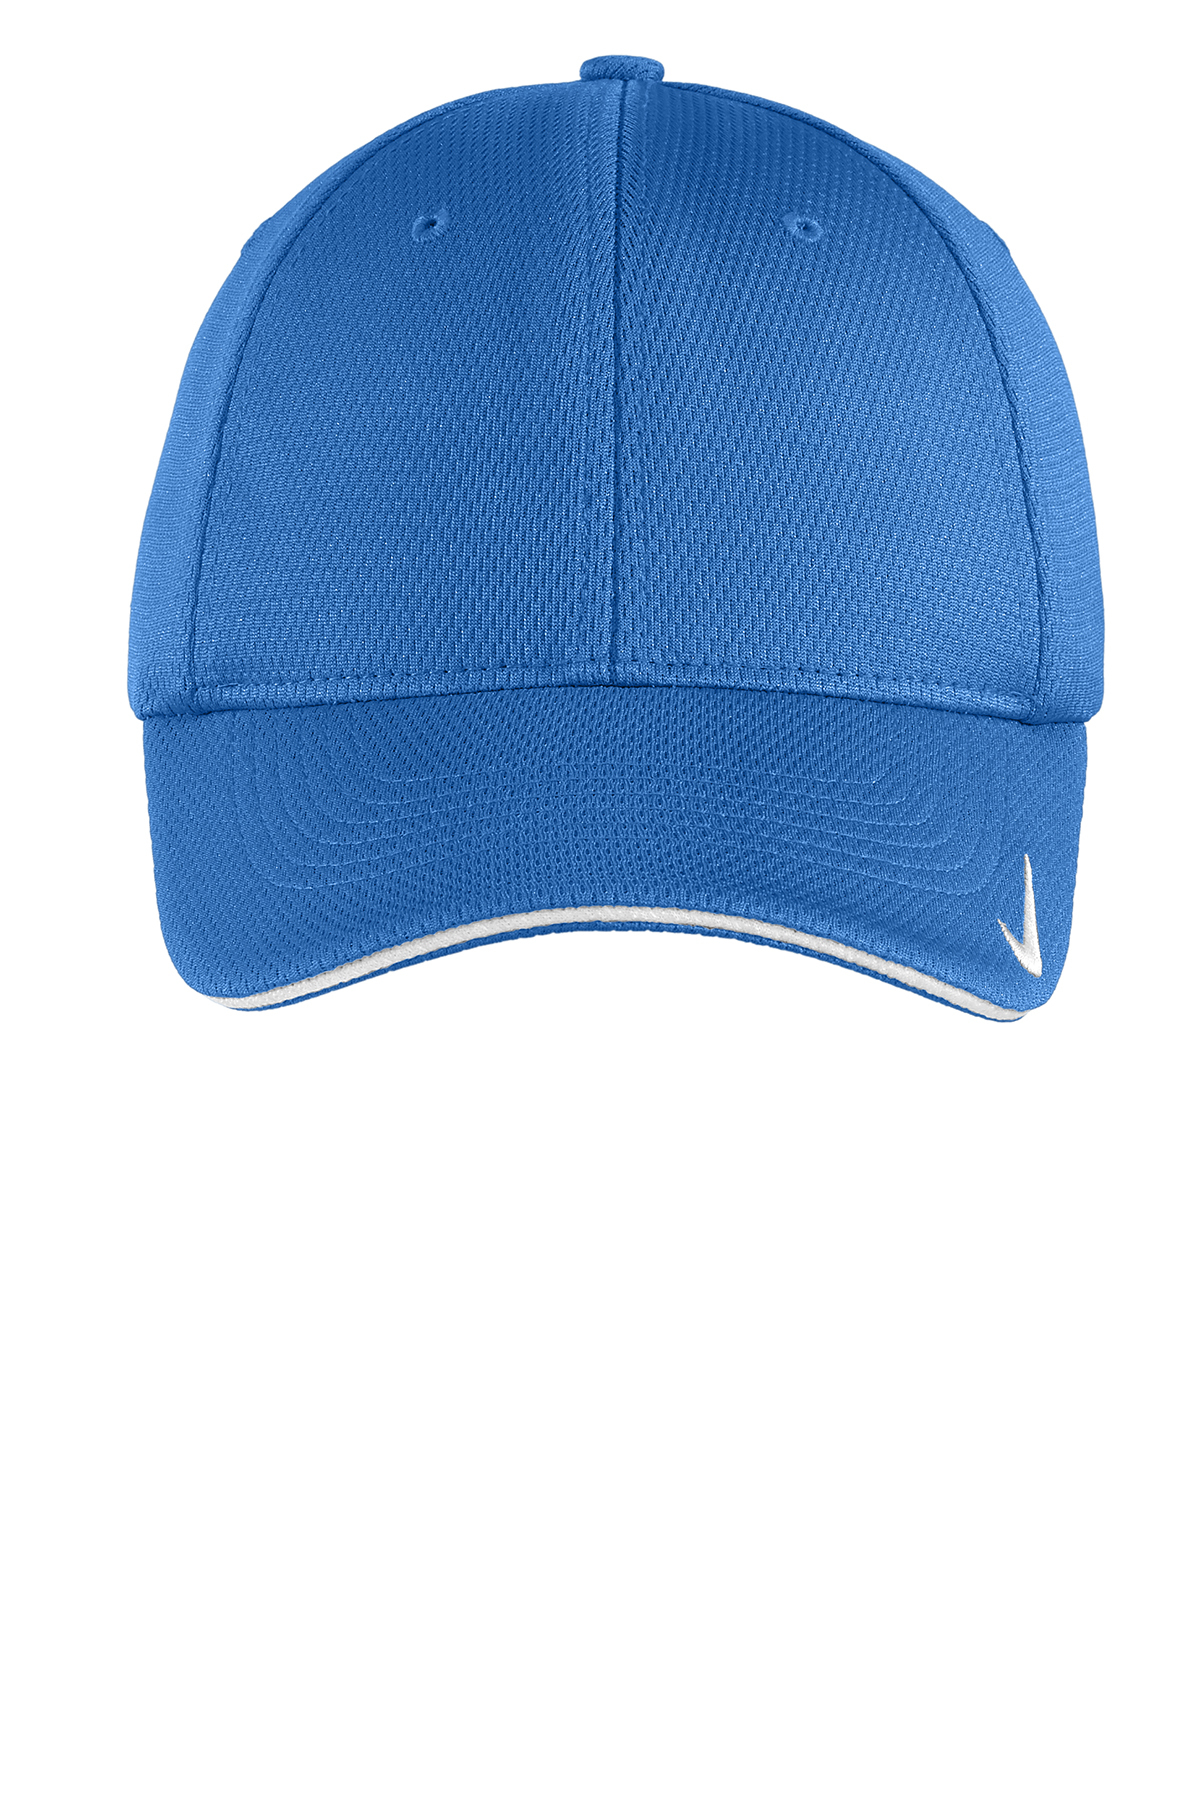 69b91b6ef0794 ... Performance Team  Nike Dri-FIT Mesh Swoosh Flex Sandwich Cap. A maximum  of 8 logos have been uploaded. Please remove a logo from My Logos to  continue